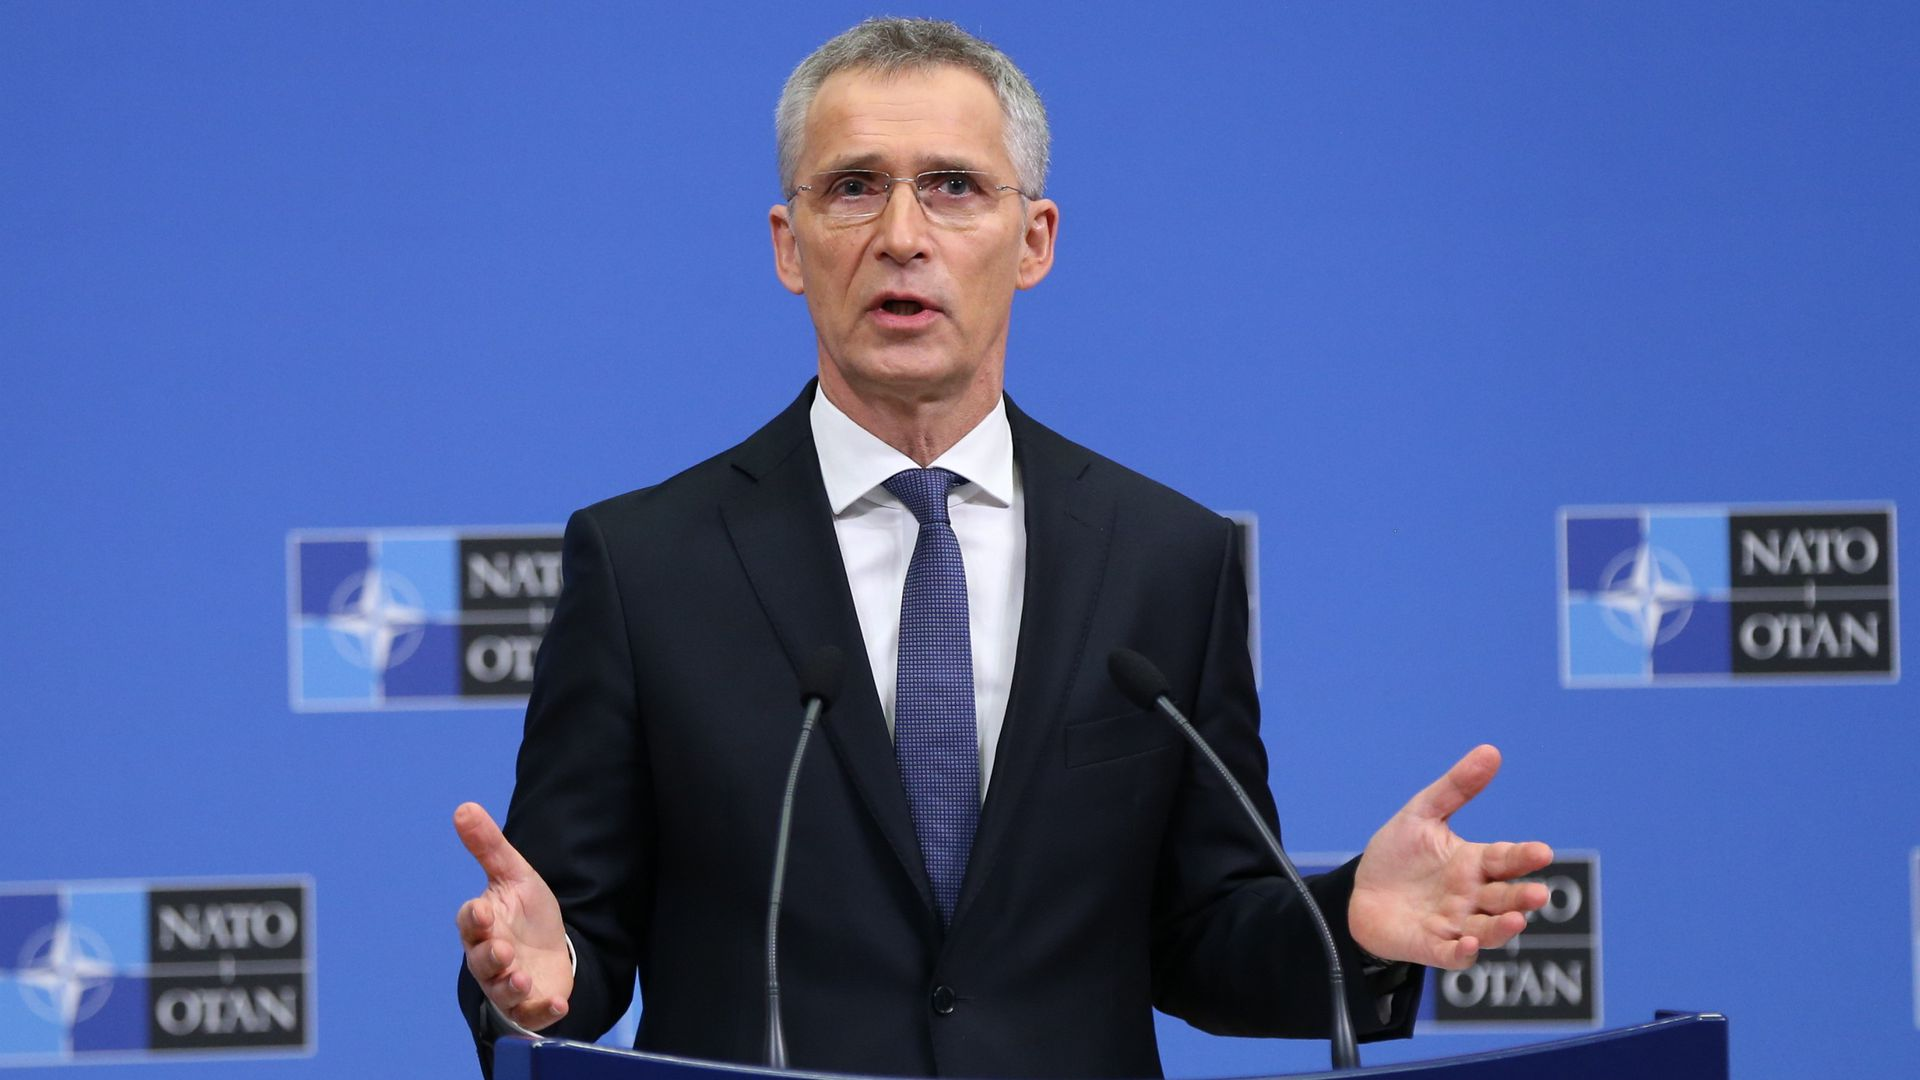 NATO Secretary General Jens Stoltenberg speaking at a lectern